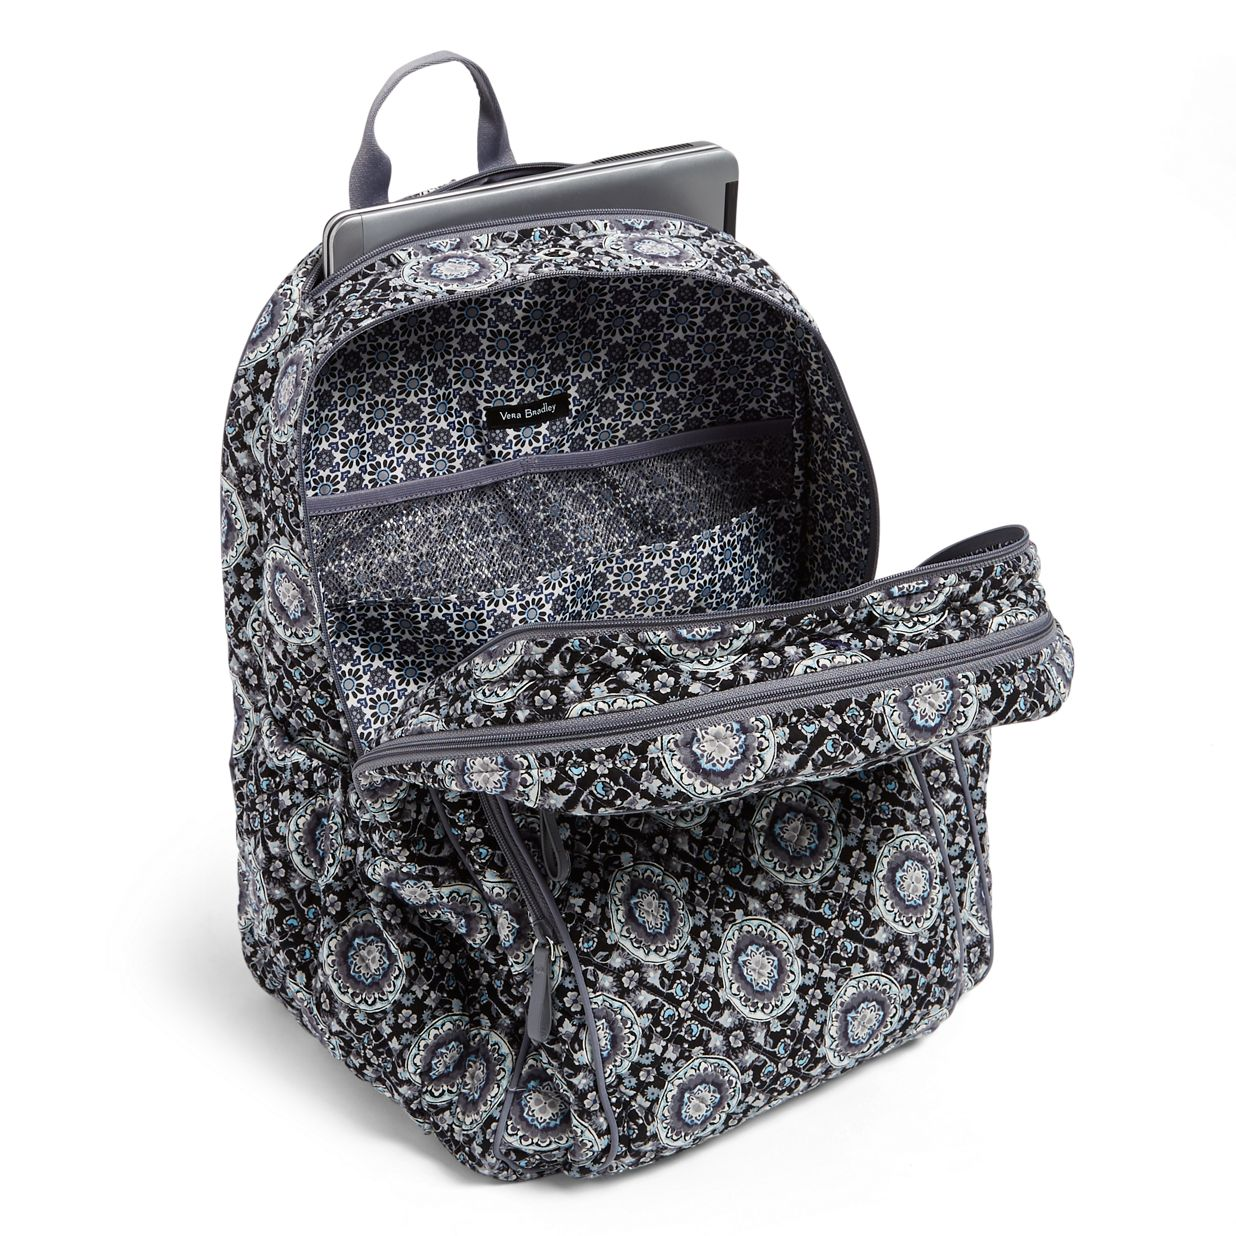 b8534f17691 ... Image of Iconic XL Campus Backpack in Charcoal Medallion